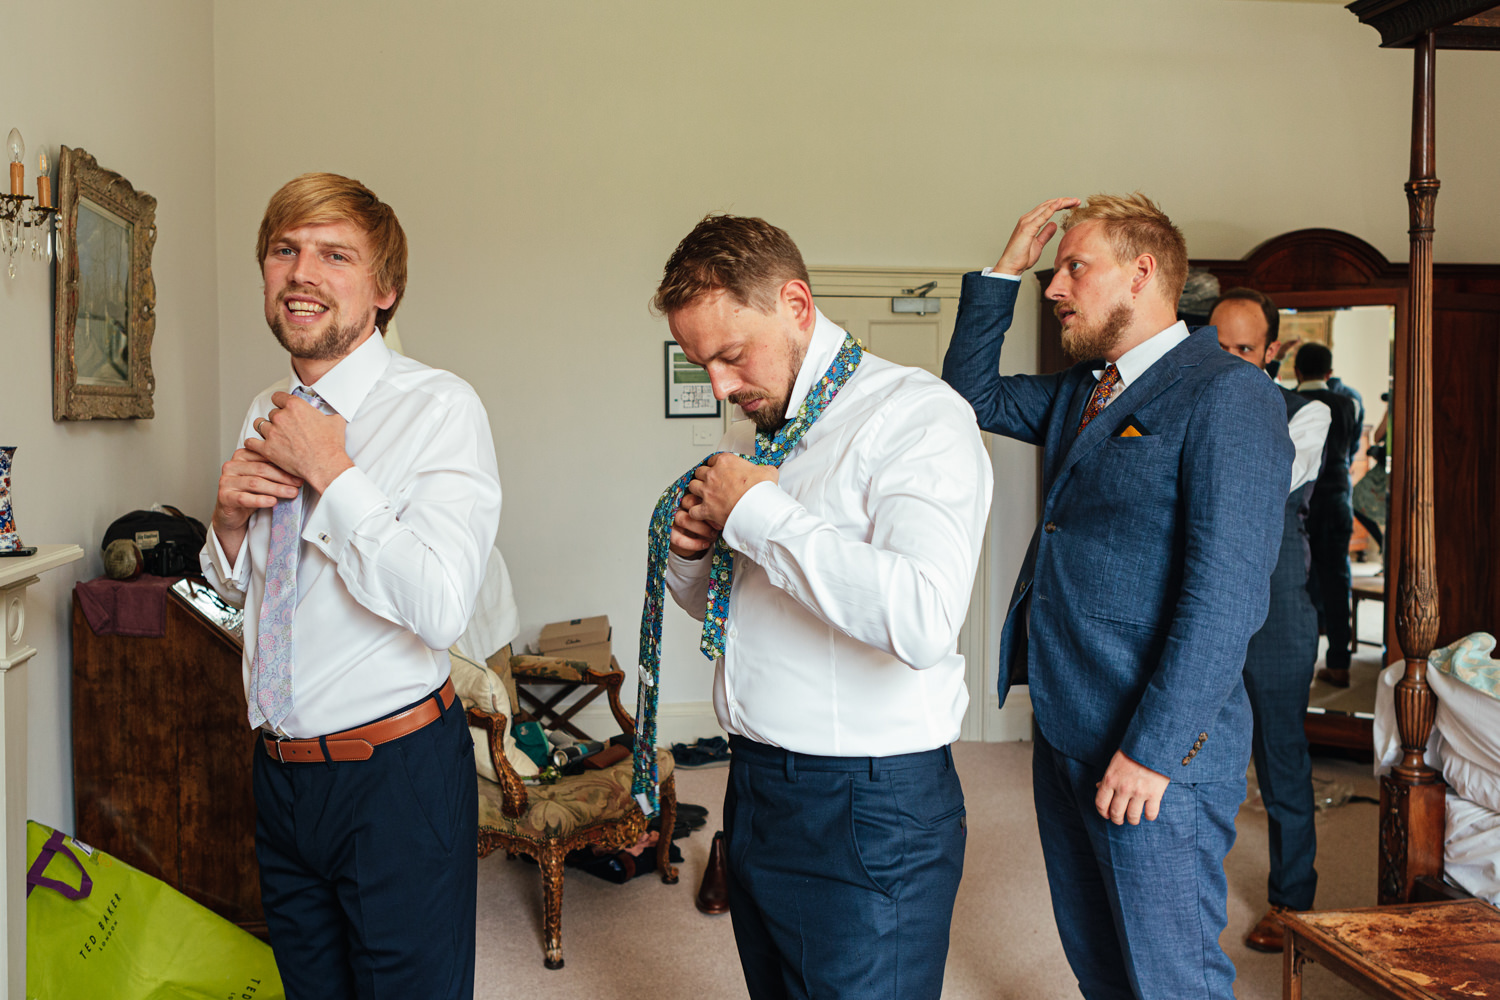 men getting dressed for a wedding at sharpham house, groom getting ready, sharpham house wedding